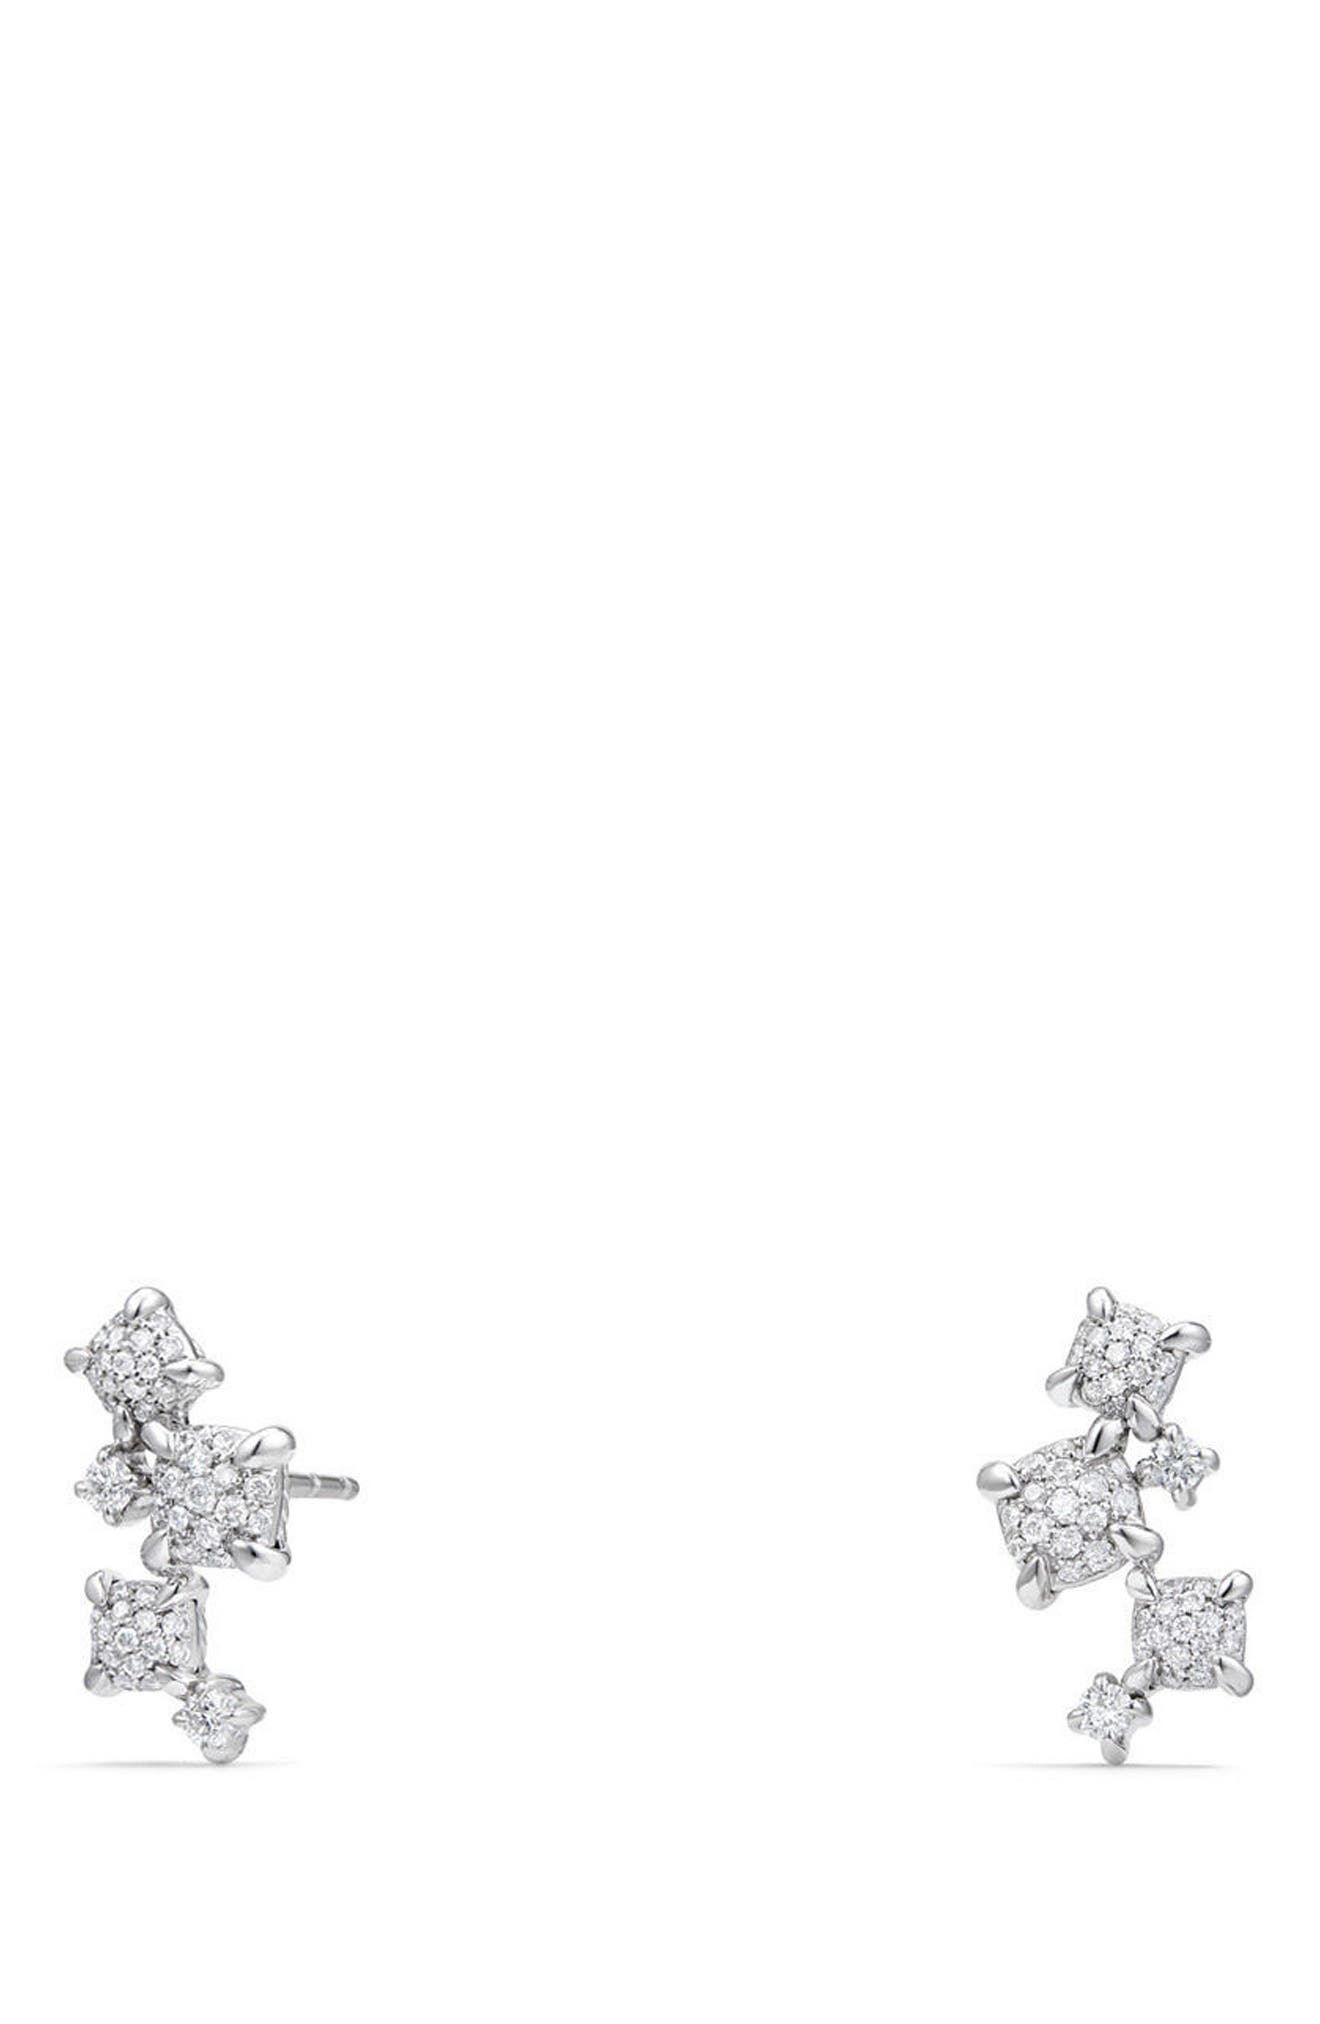 Petite Châtelaine Climber Earrings in 18K Gold with Diamonds,                             Main thumbnail 1, color,                             WHITE GOLD